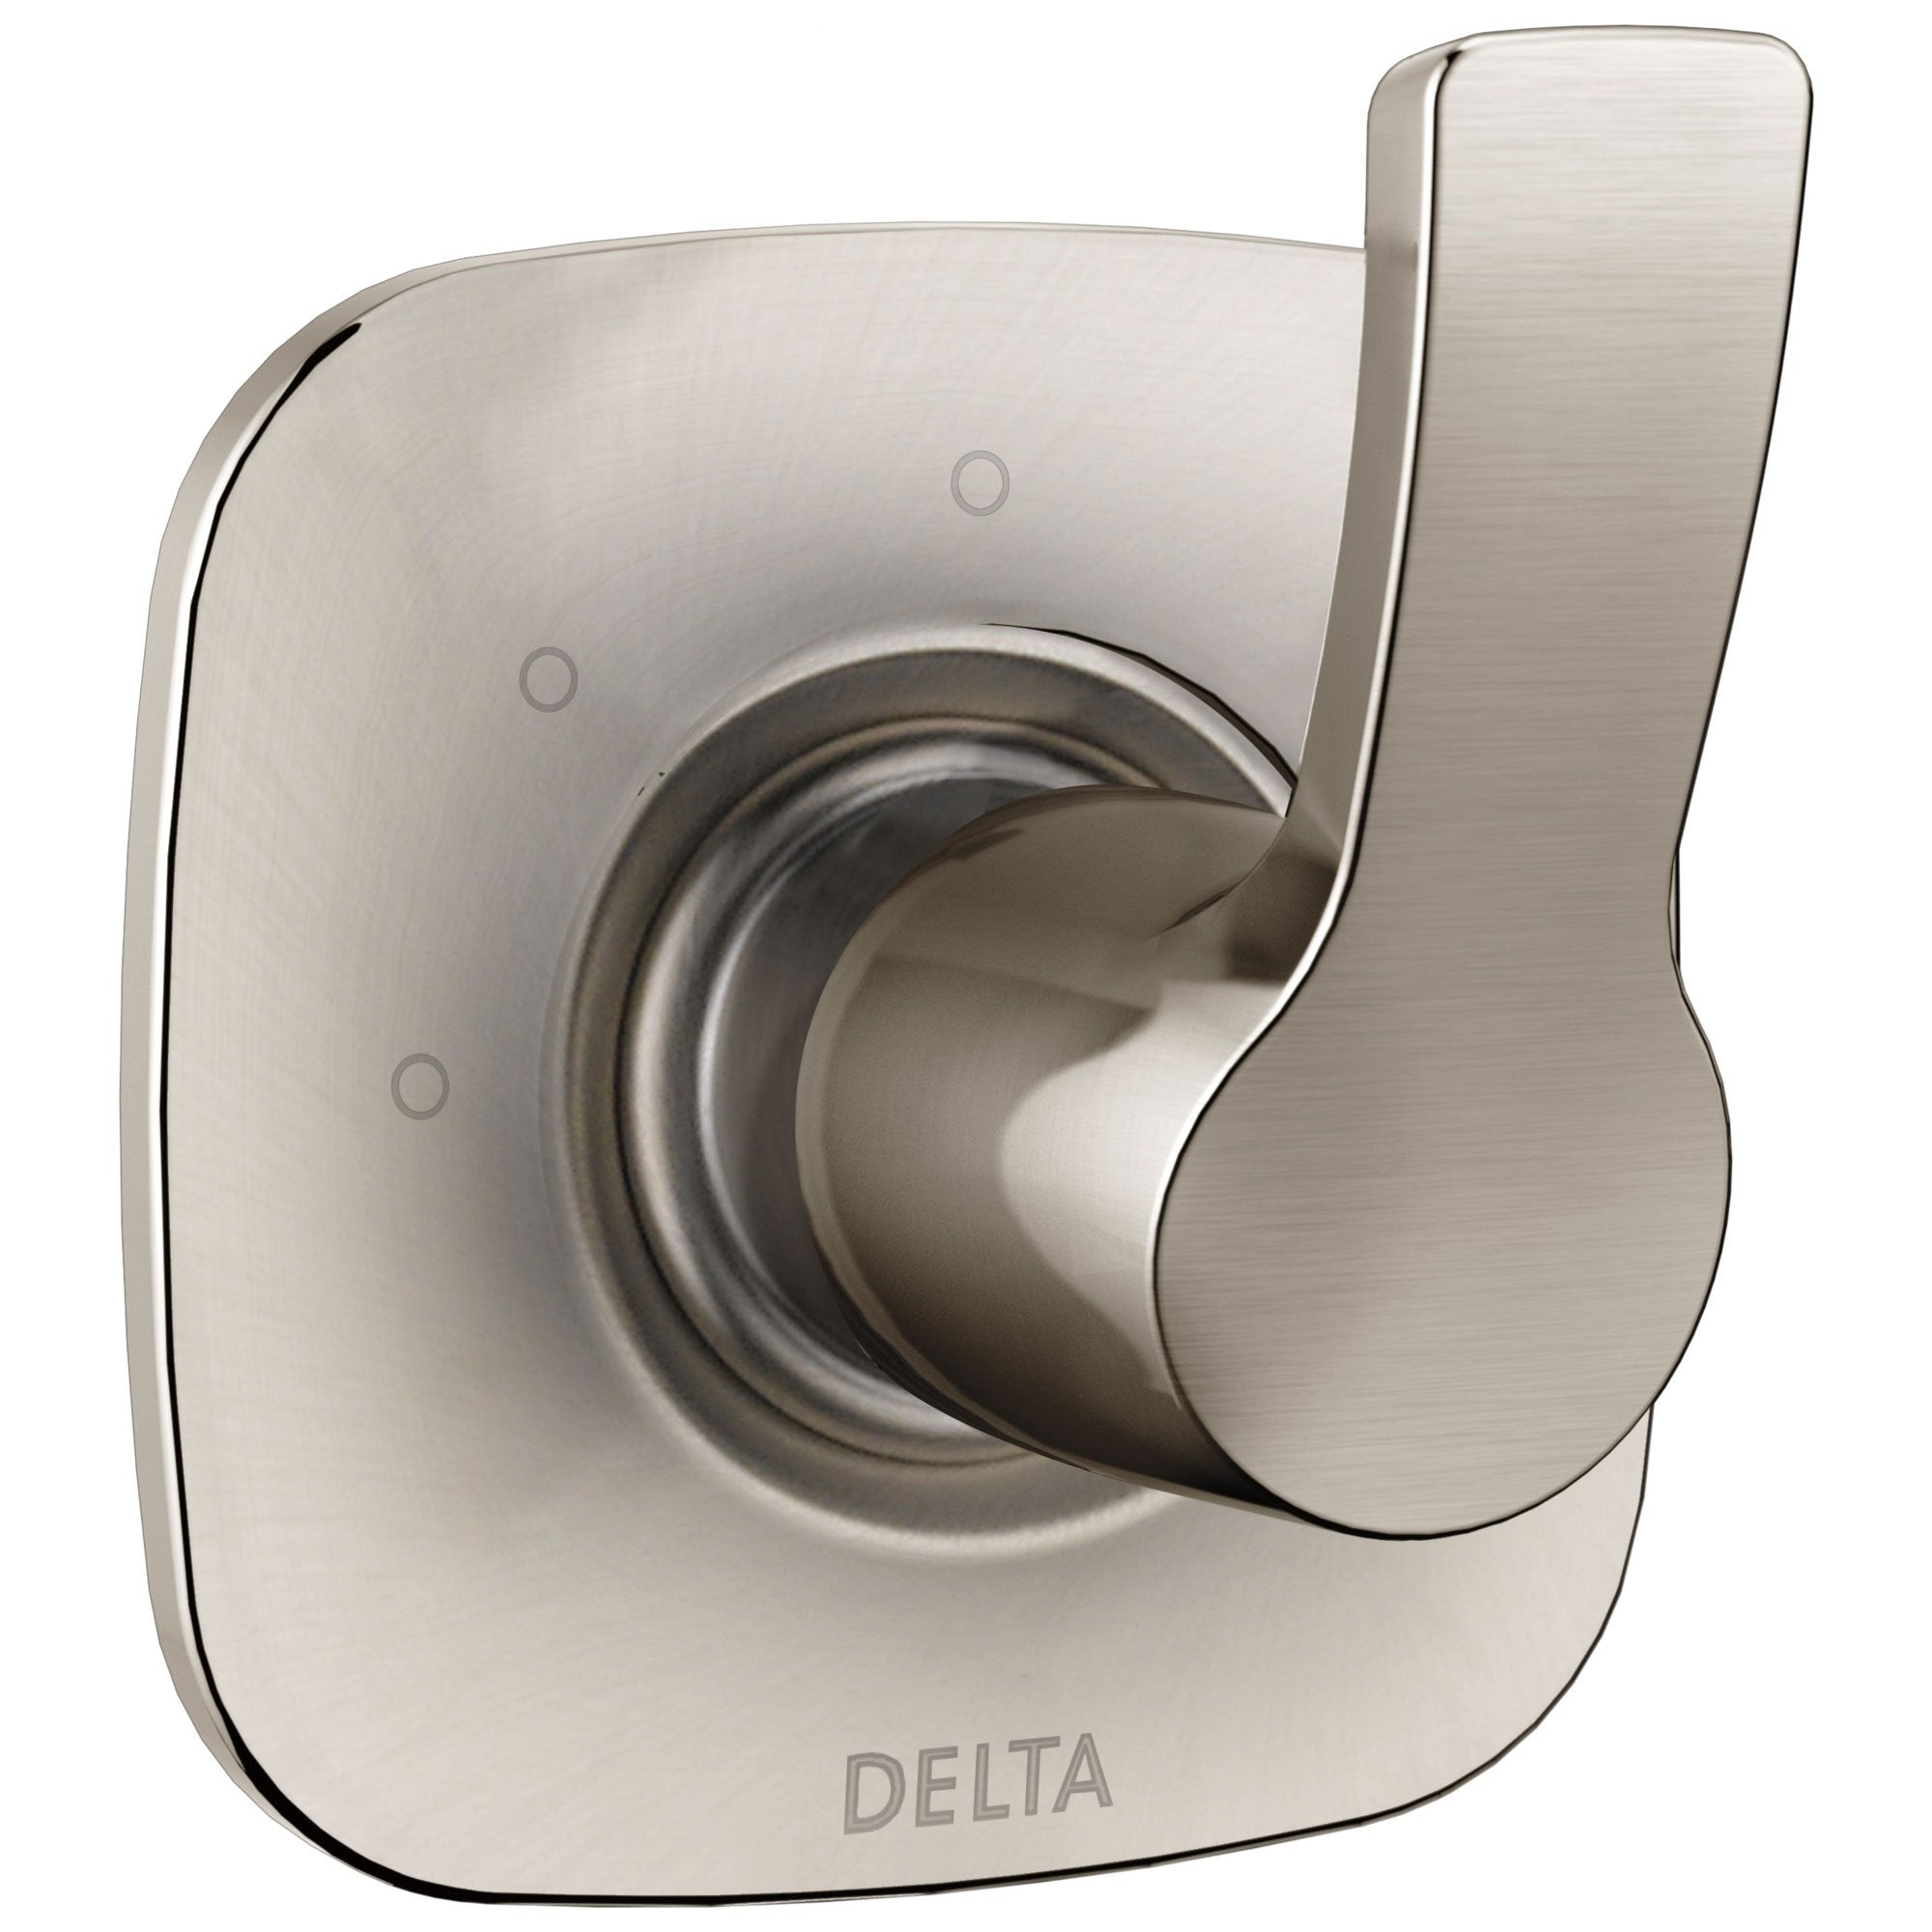 Delta Tesla Collection Stainless Steel Finish Modern 3-Setting 2-Port Single Handle Shower Diverter Includes Rough-in Valve D2059V